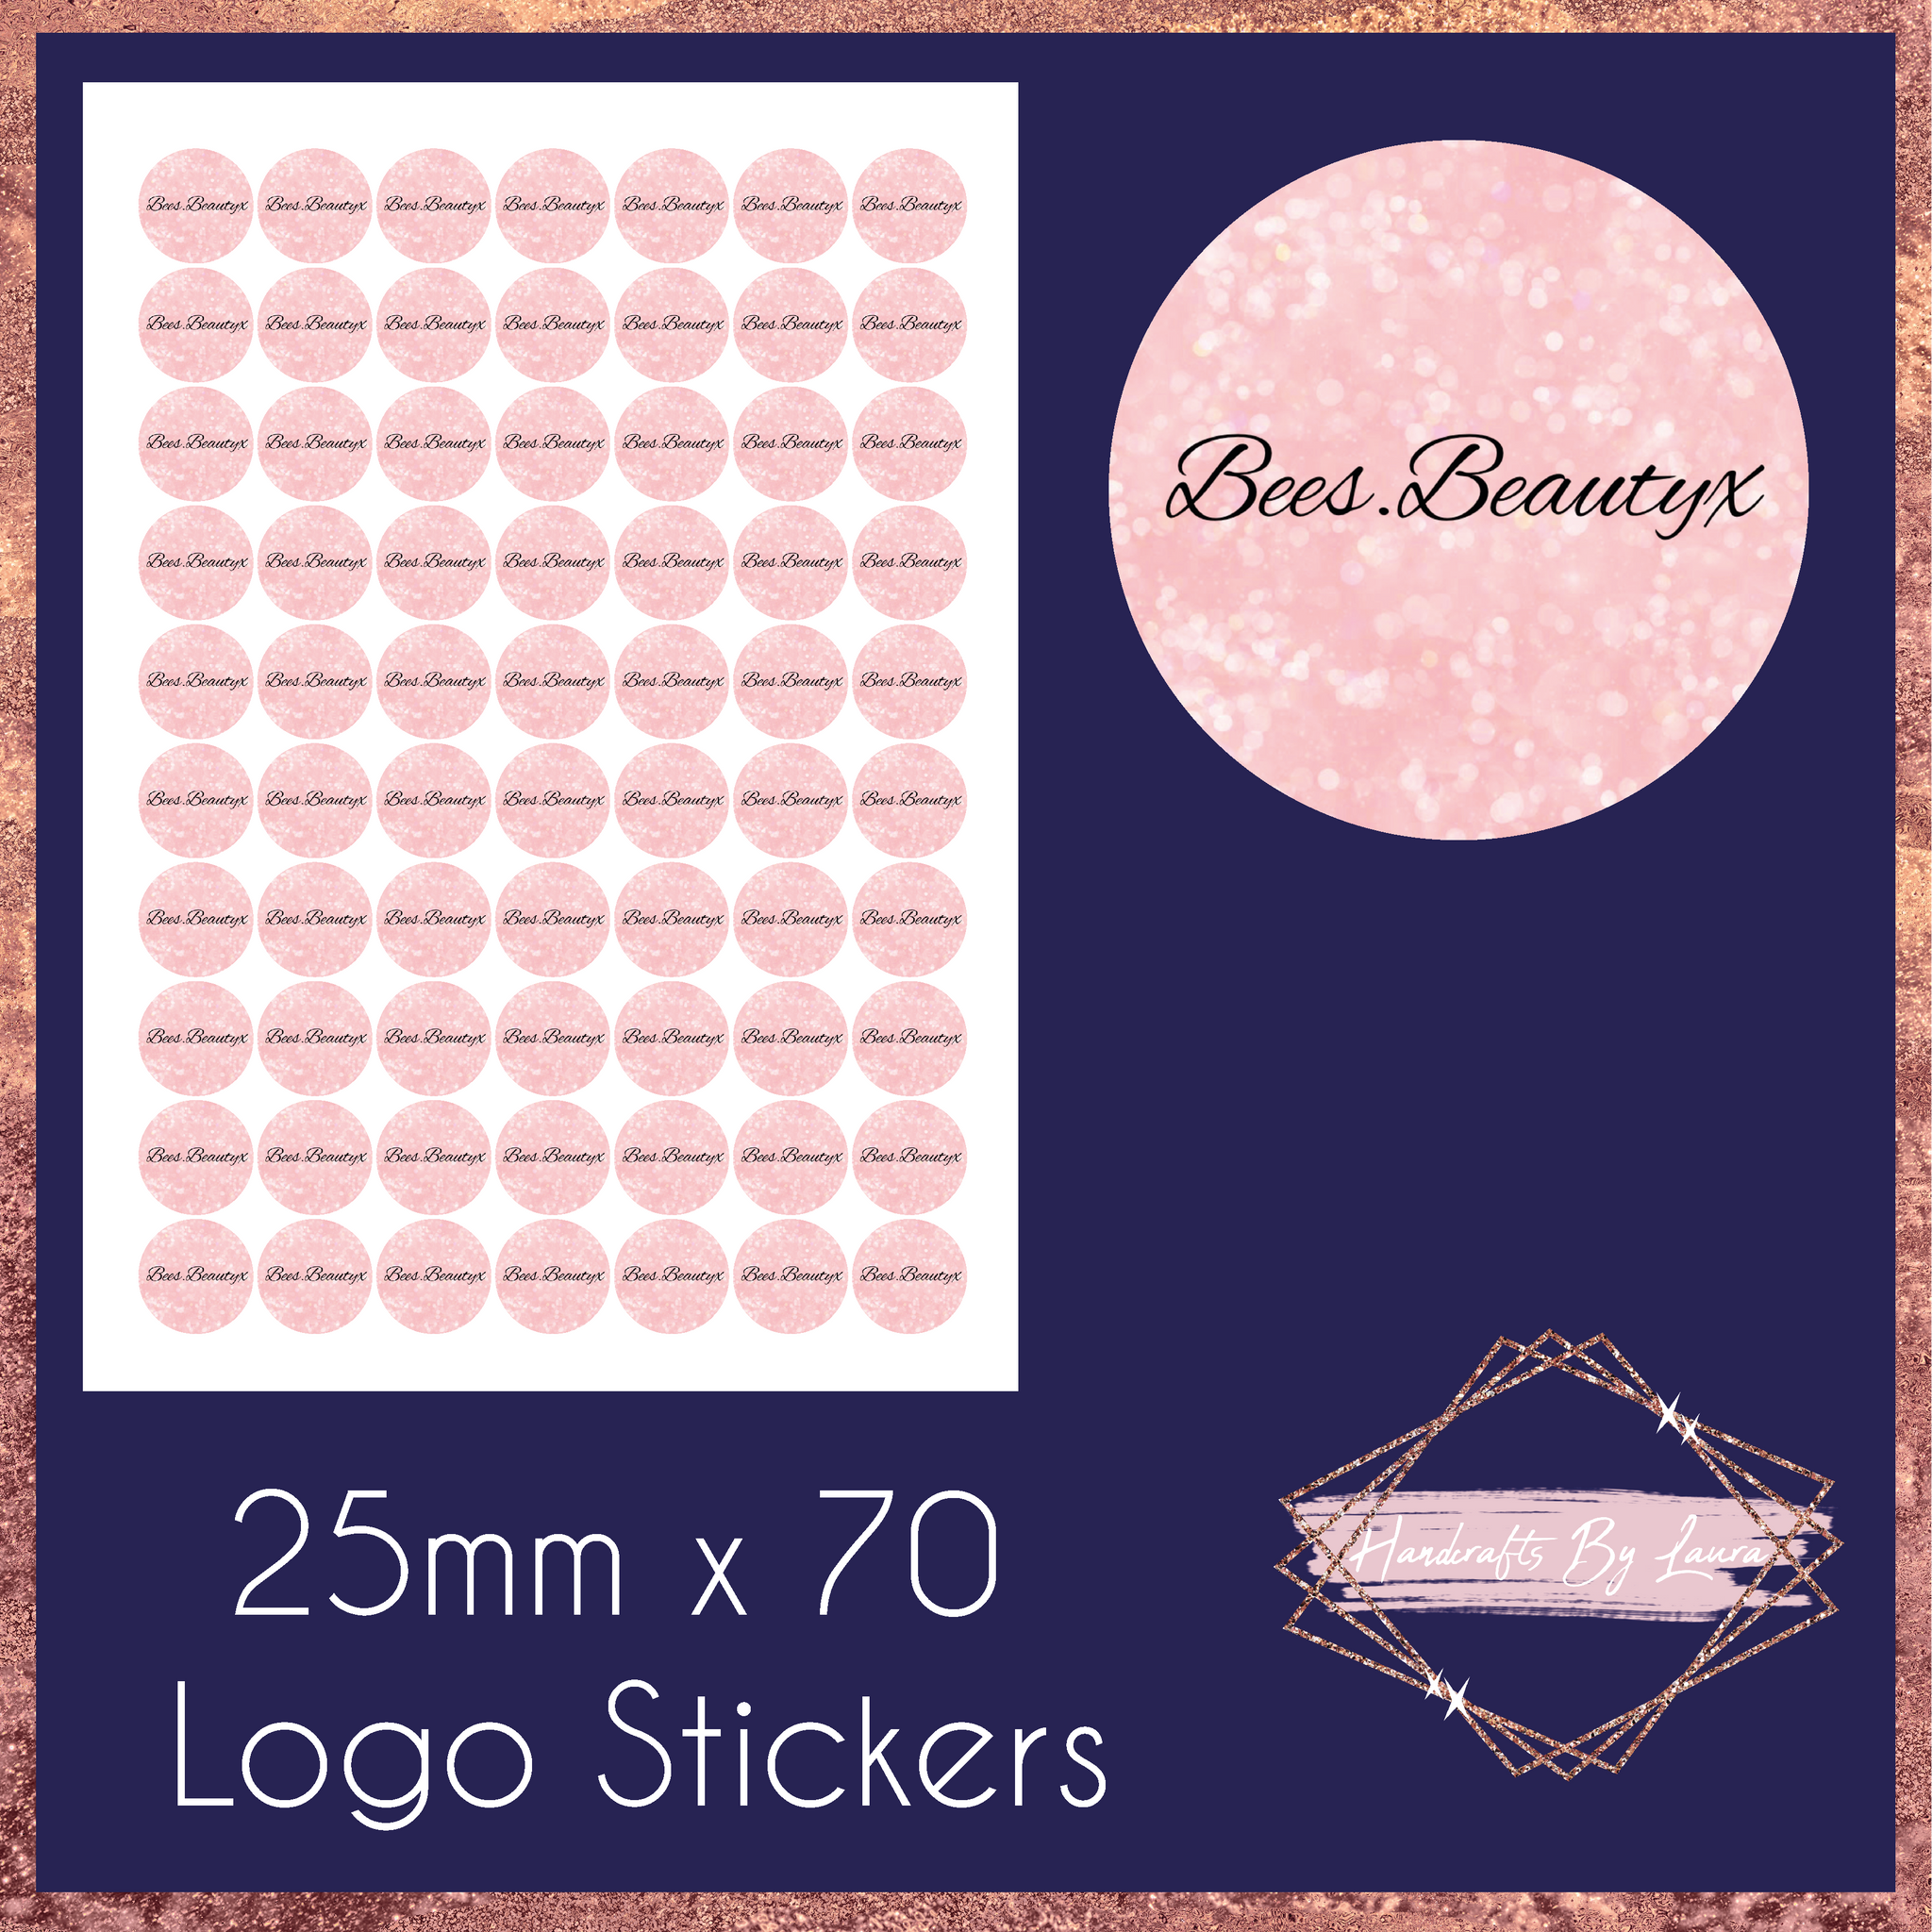 25mm Logo Stickers